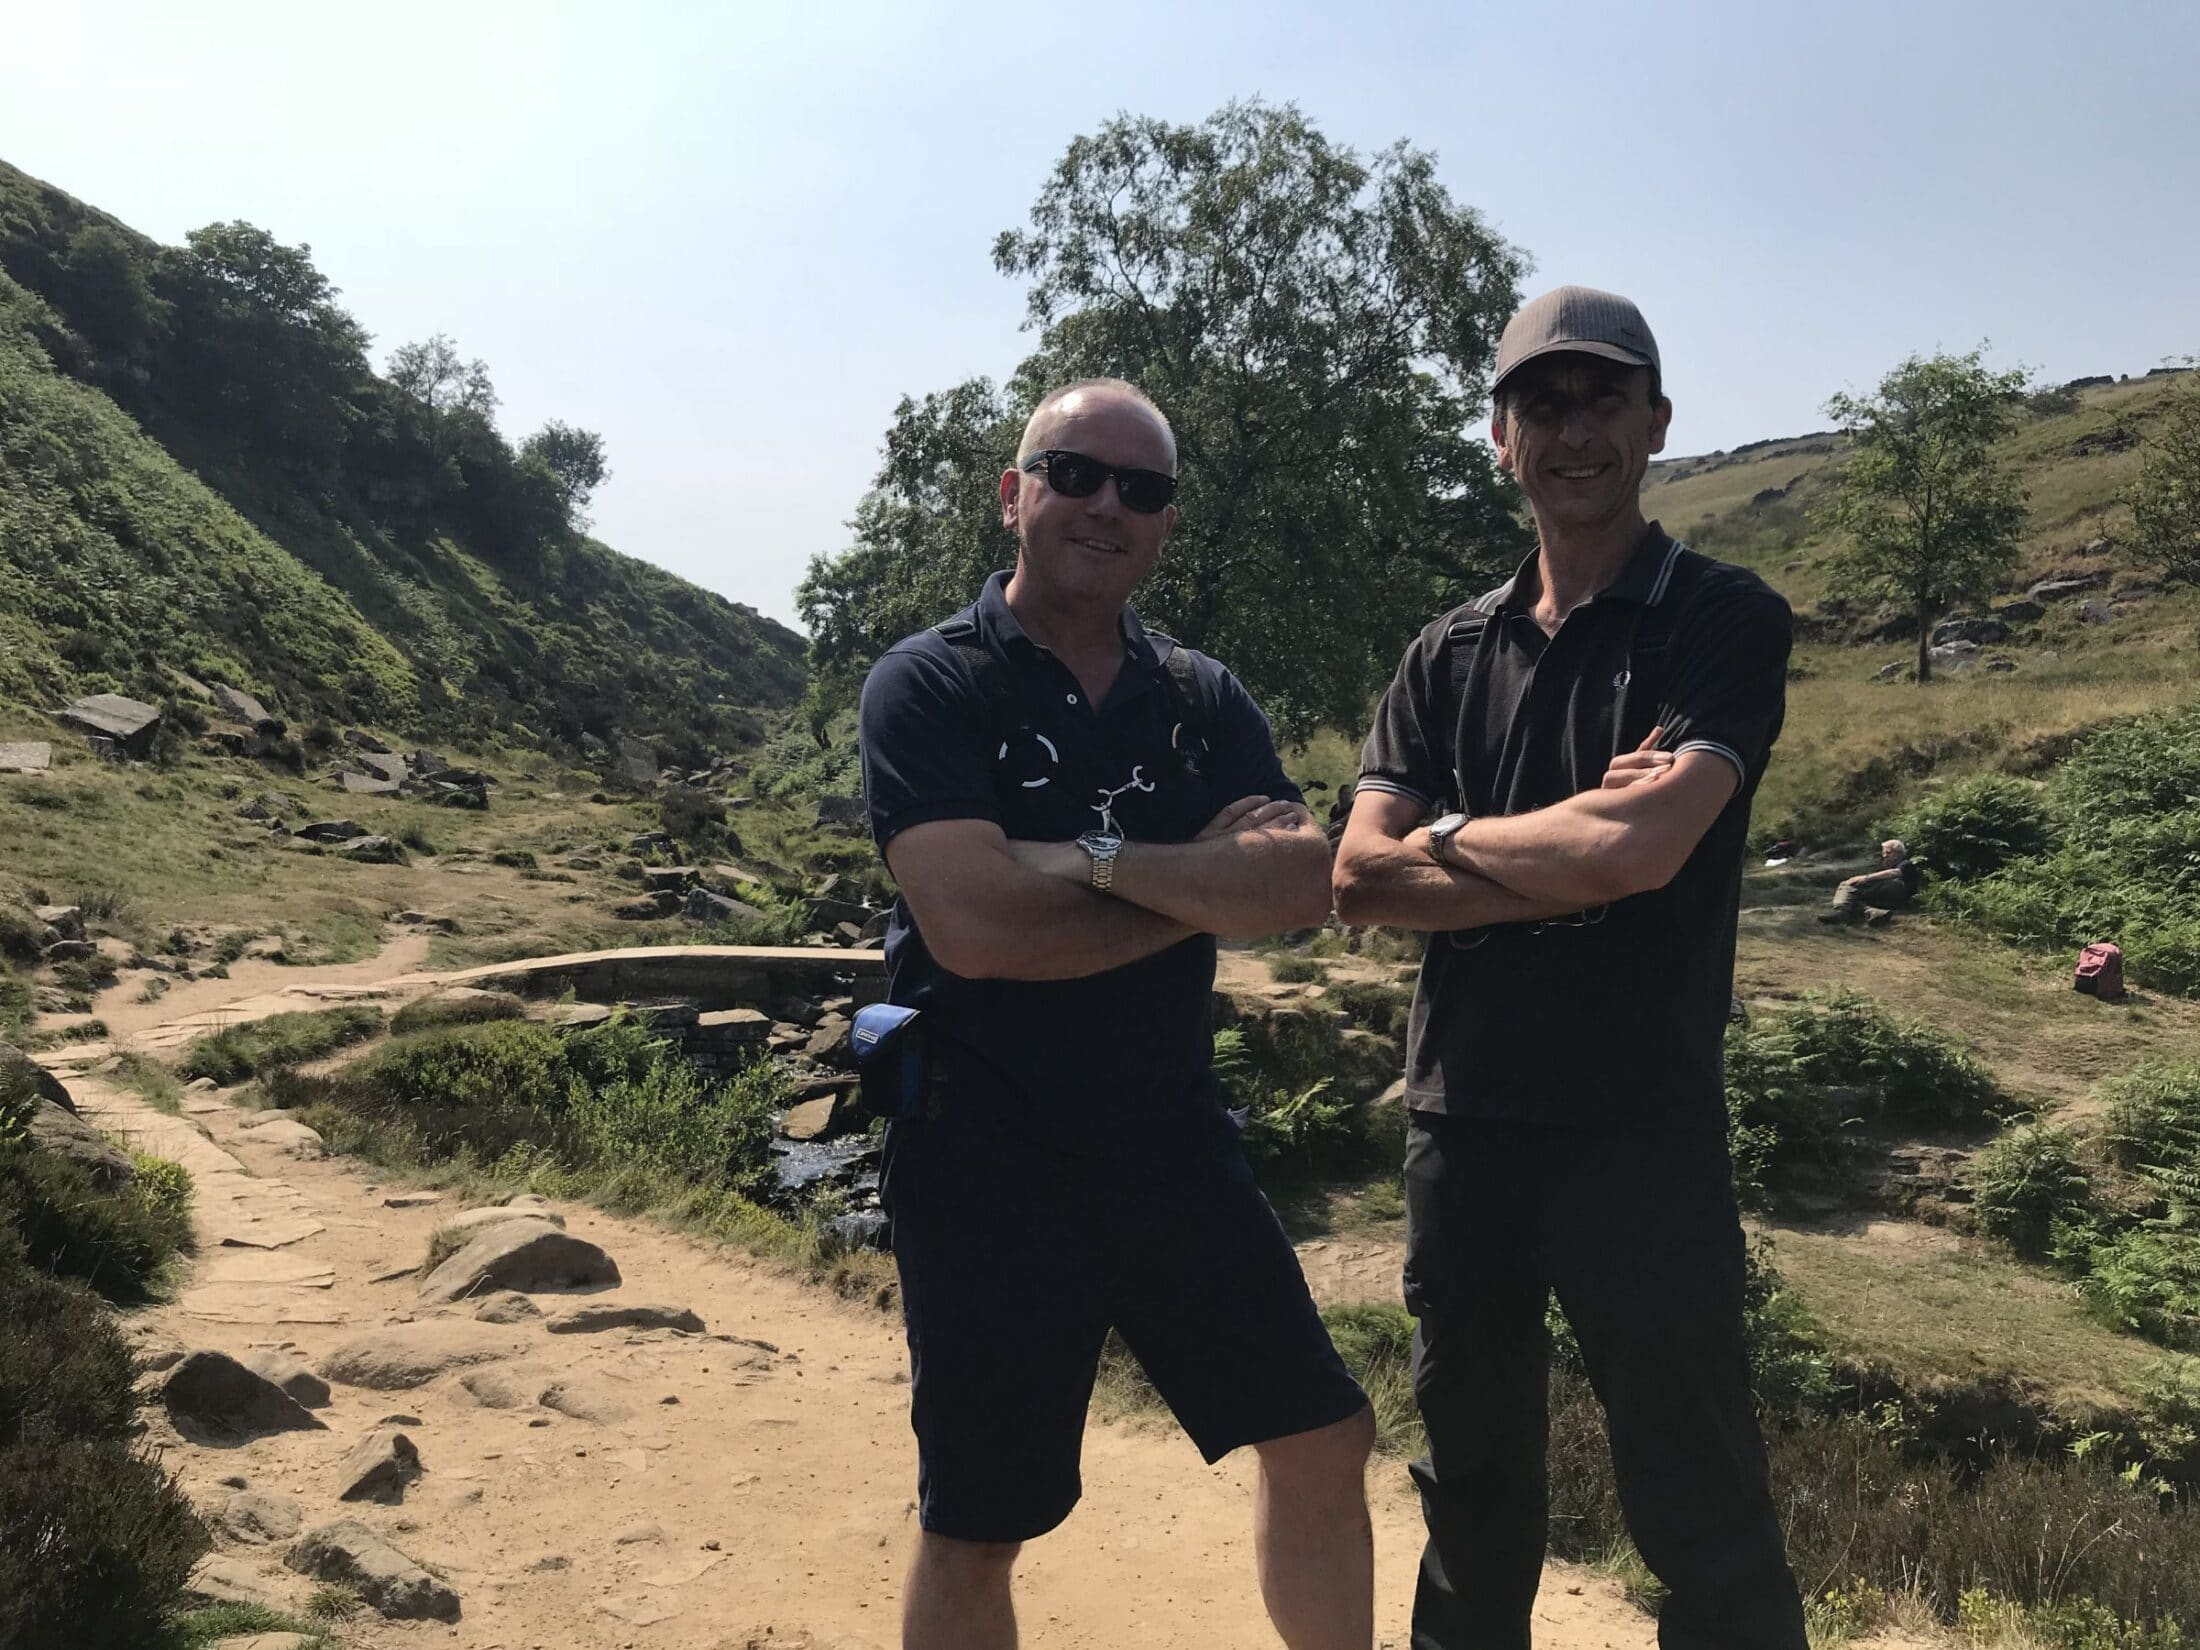 Phil and Darren on location filming for Ch4 TV